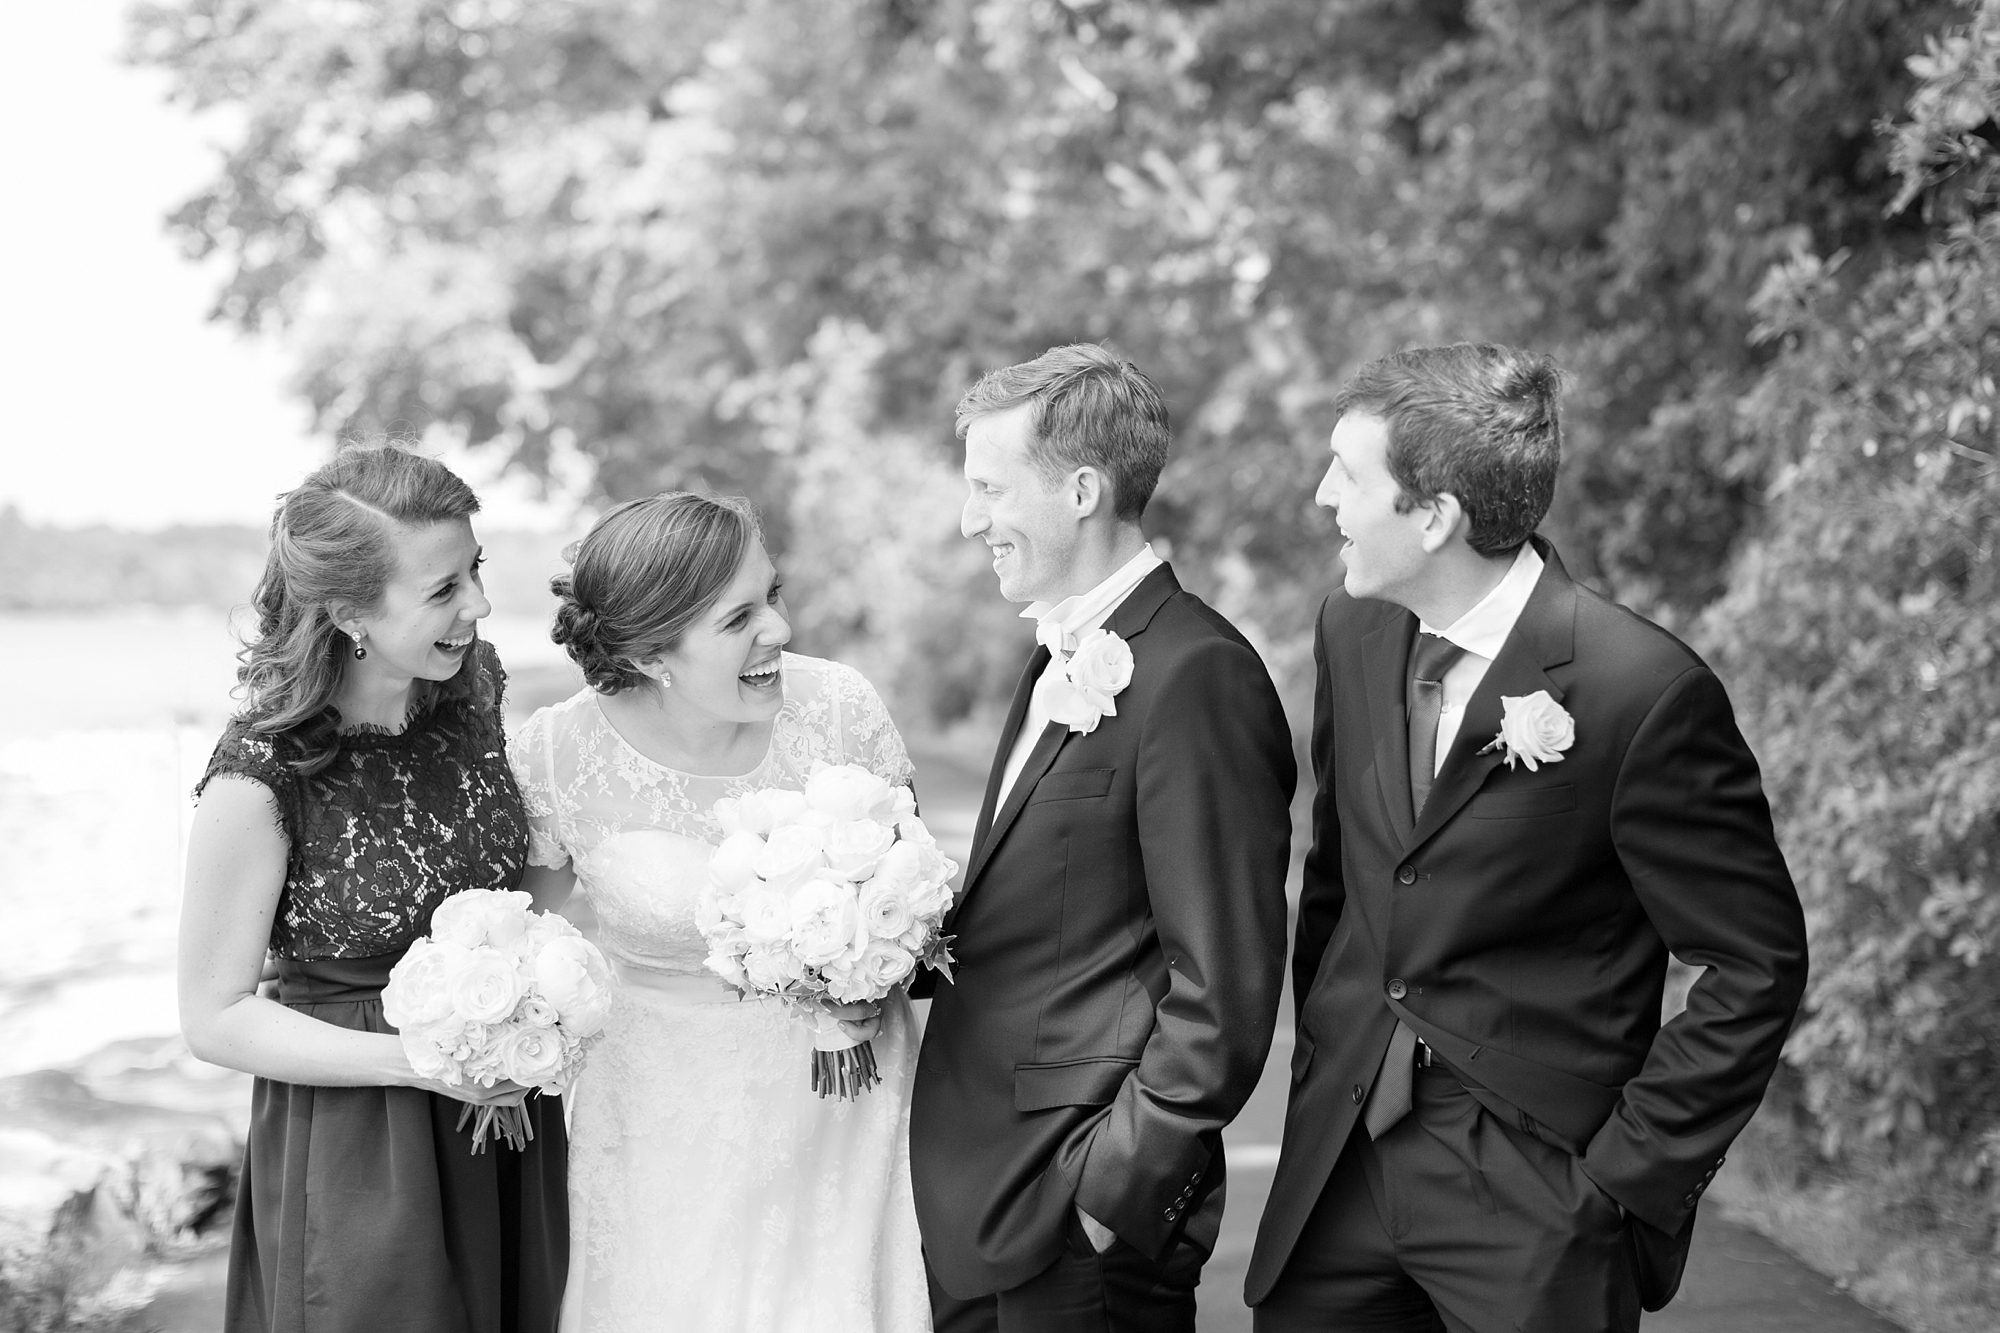 Somerville 5-Bridal Party-1049_anna grace photography sherwood forest annapolis maryland wedding photographer photo.jpg